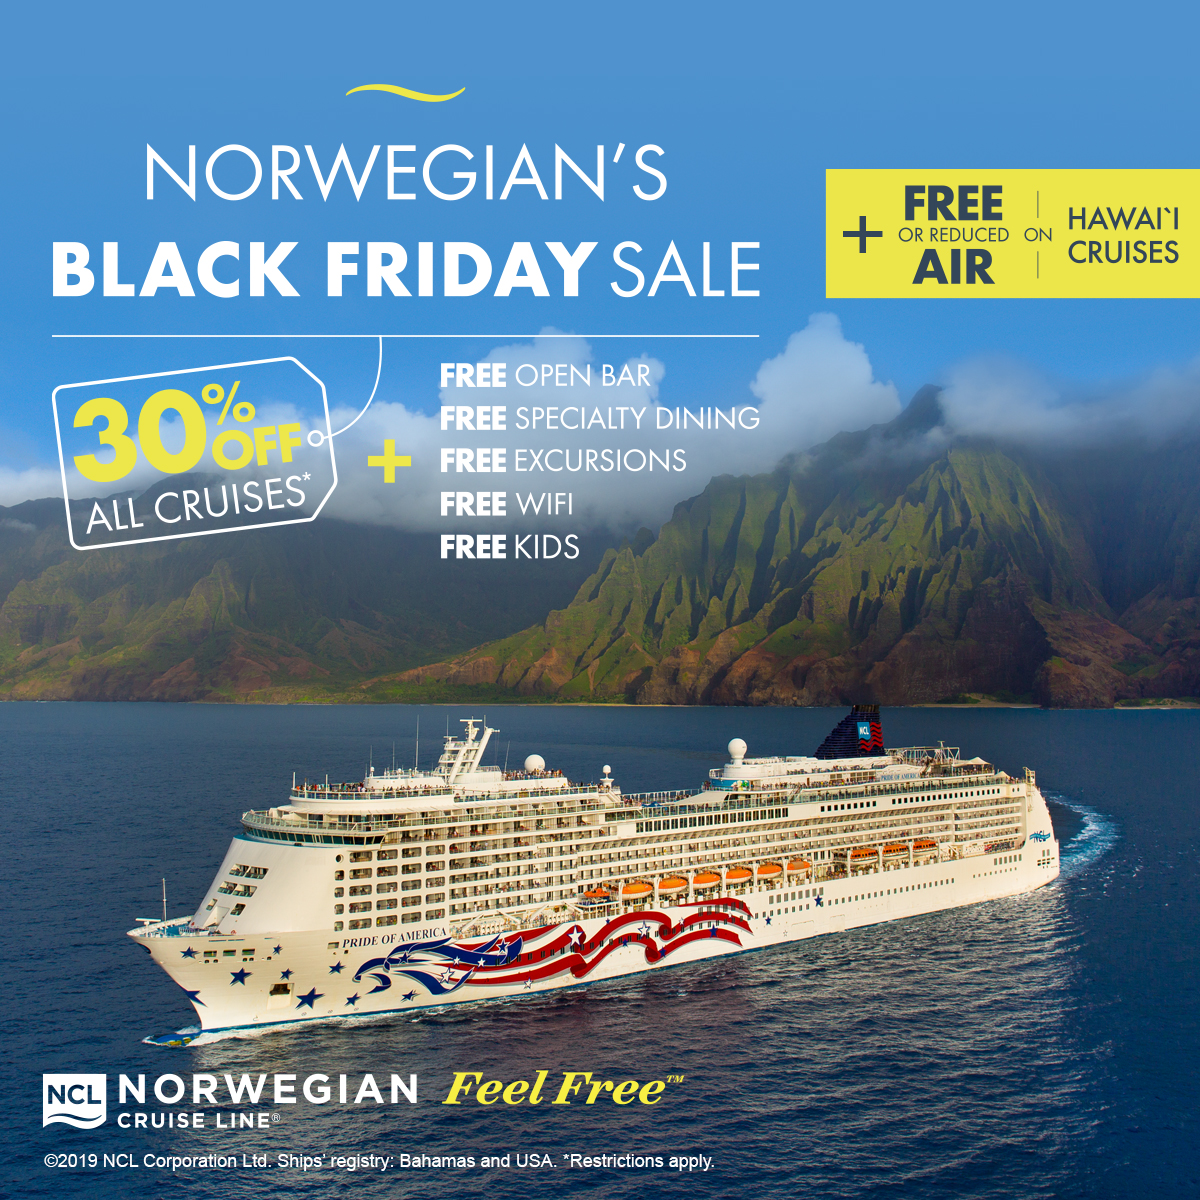 Norwegian Cruise Lines FREE AT SEA Black Friday Hawaii Sale!